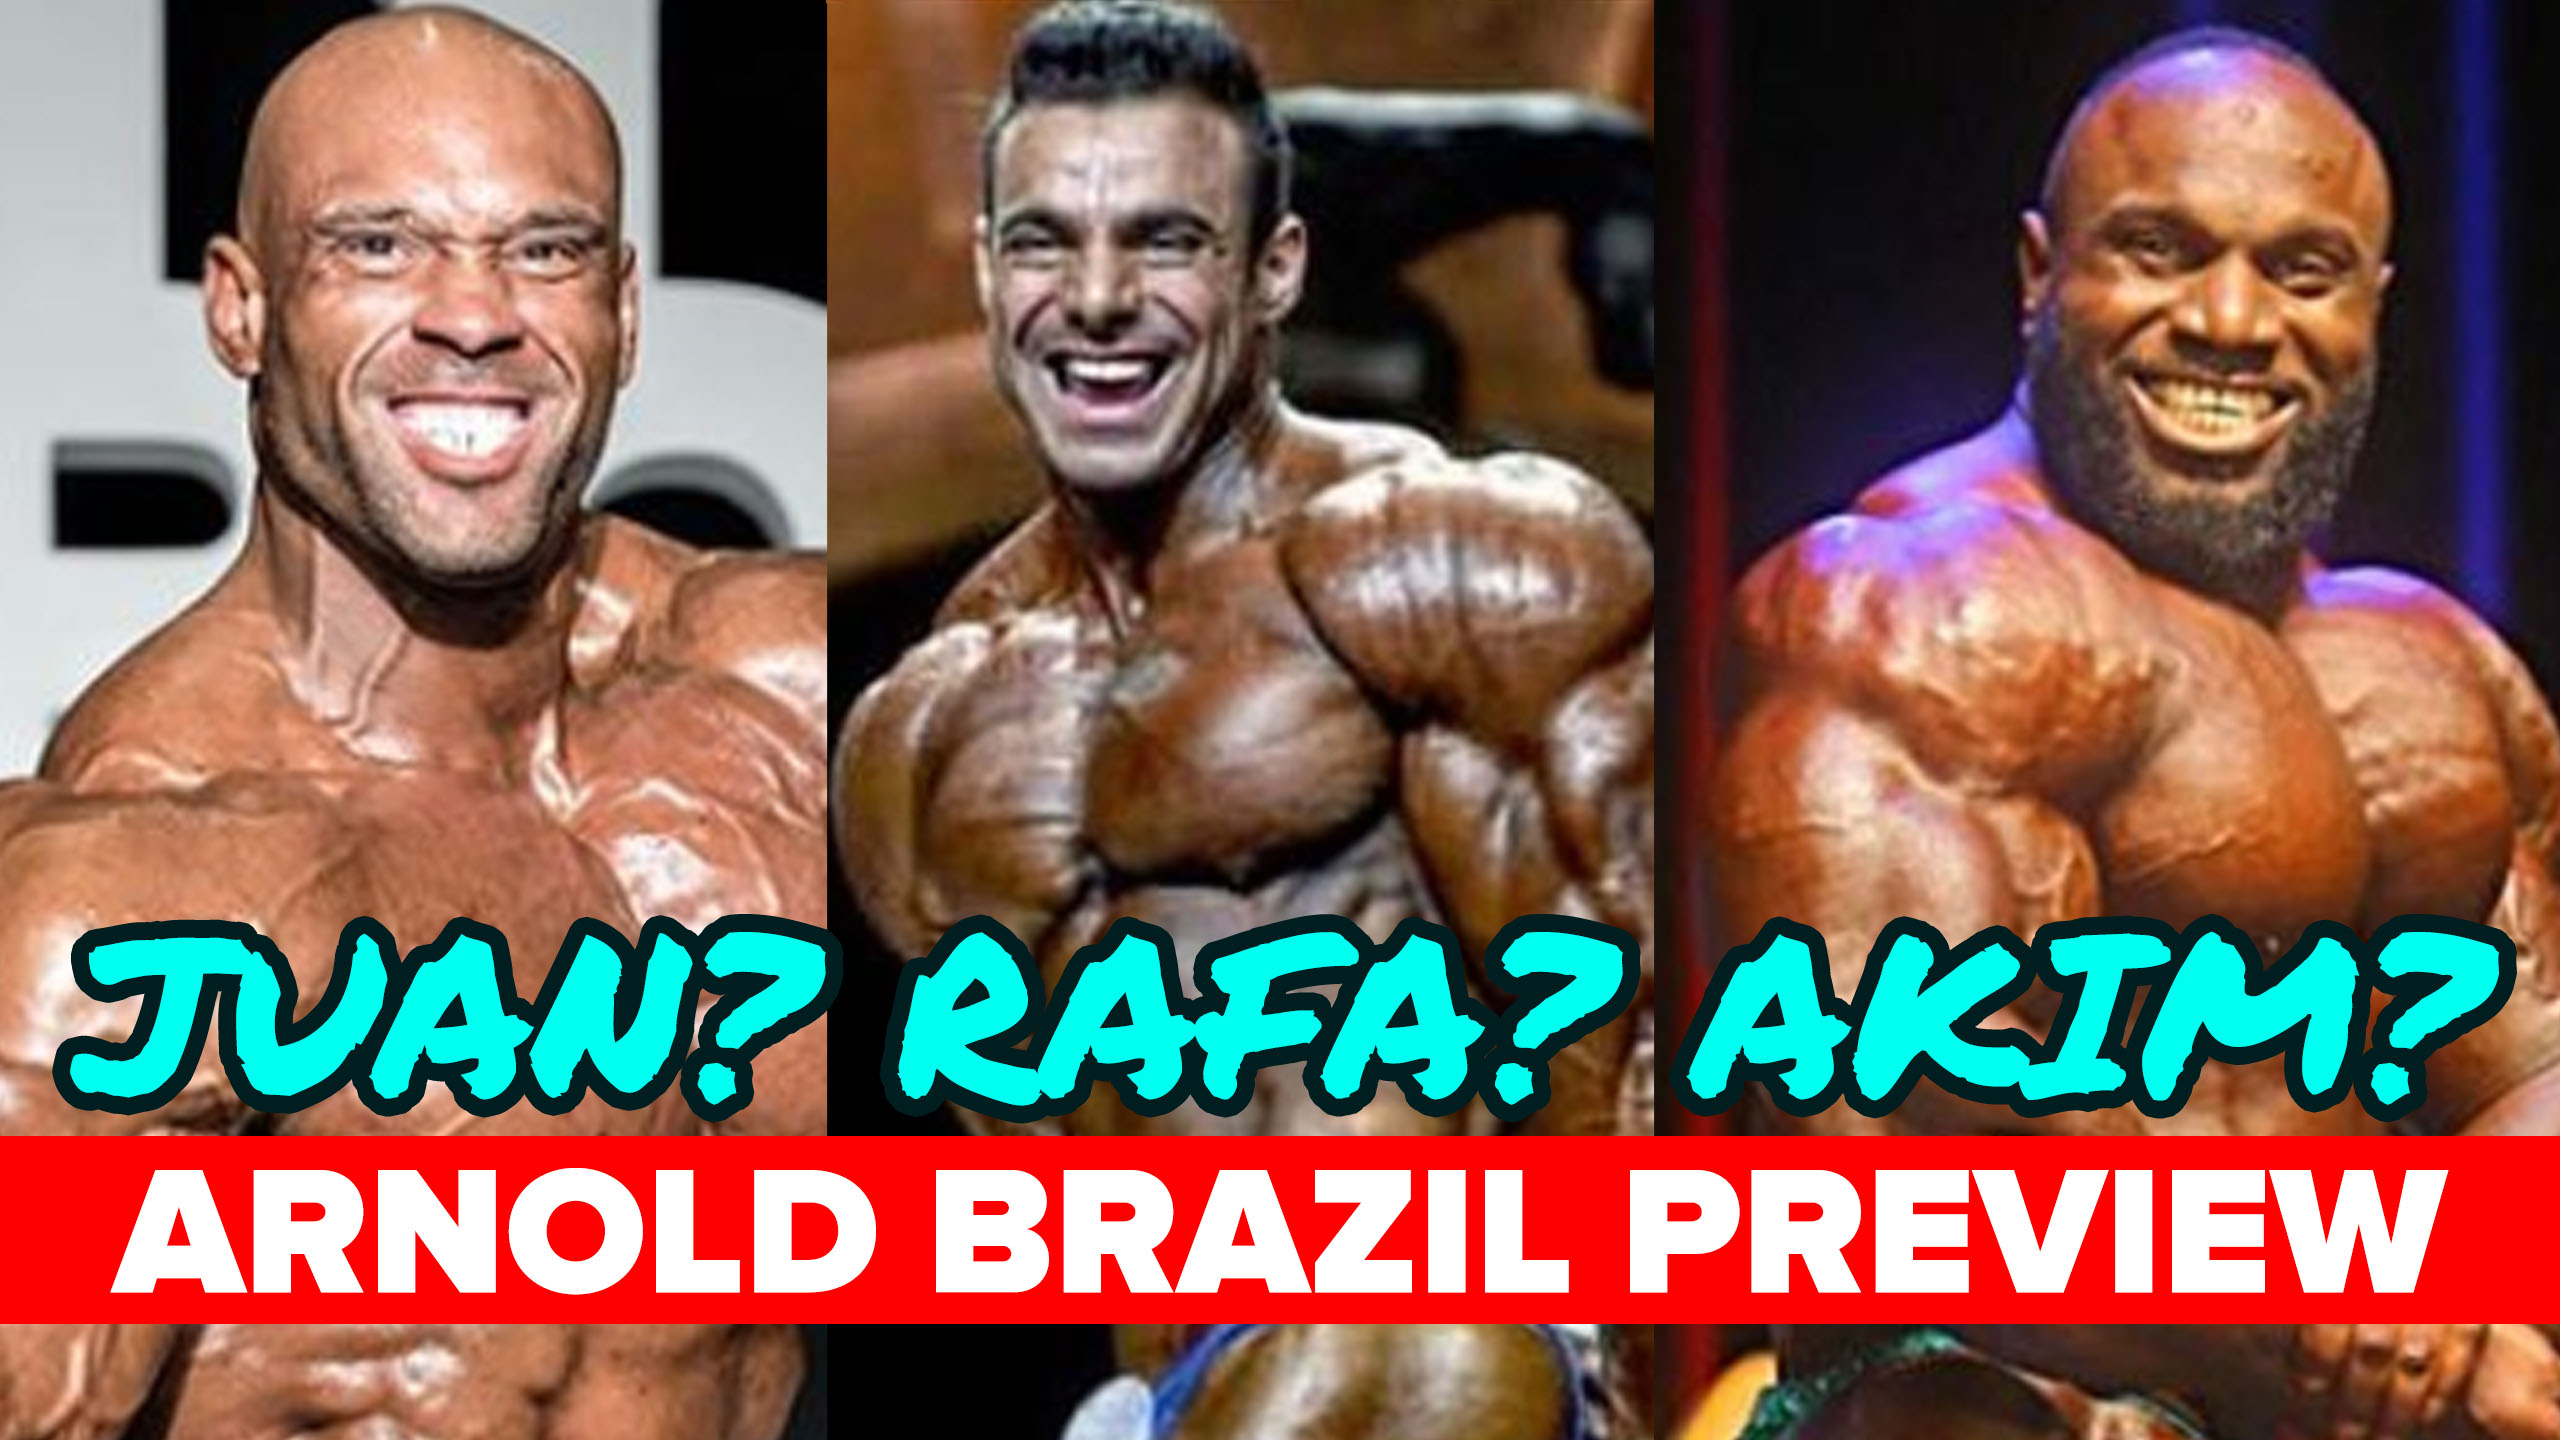 arnold brazil preview